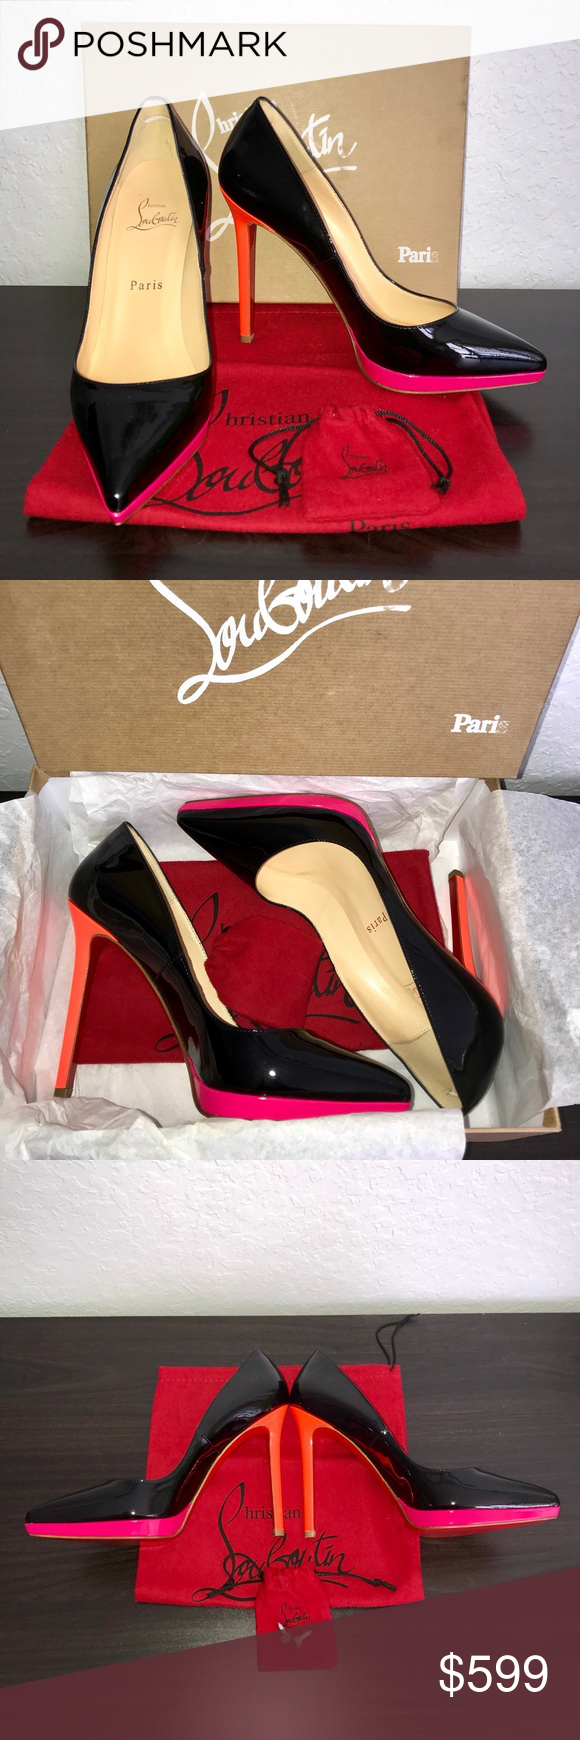 73b677c9d61 Christian Louboutin Pigalle Plato 120 Colorblock In Dunkin Donuts colors!  Retails for  775. Limited